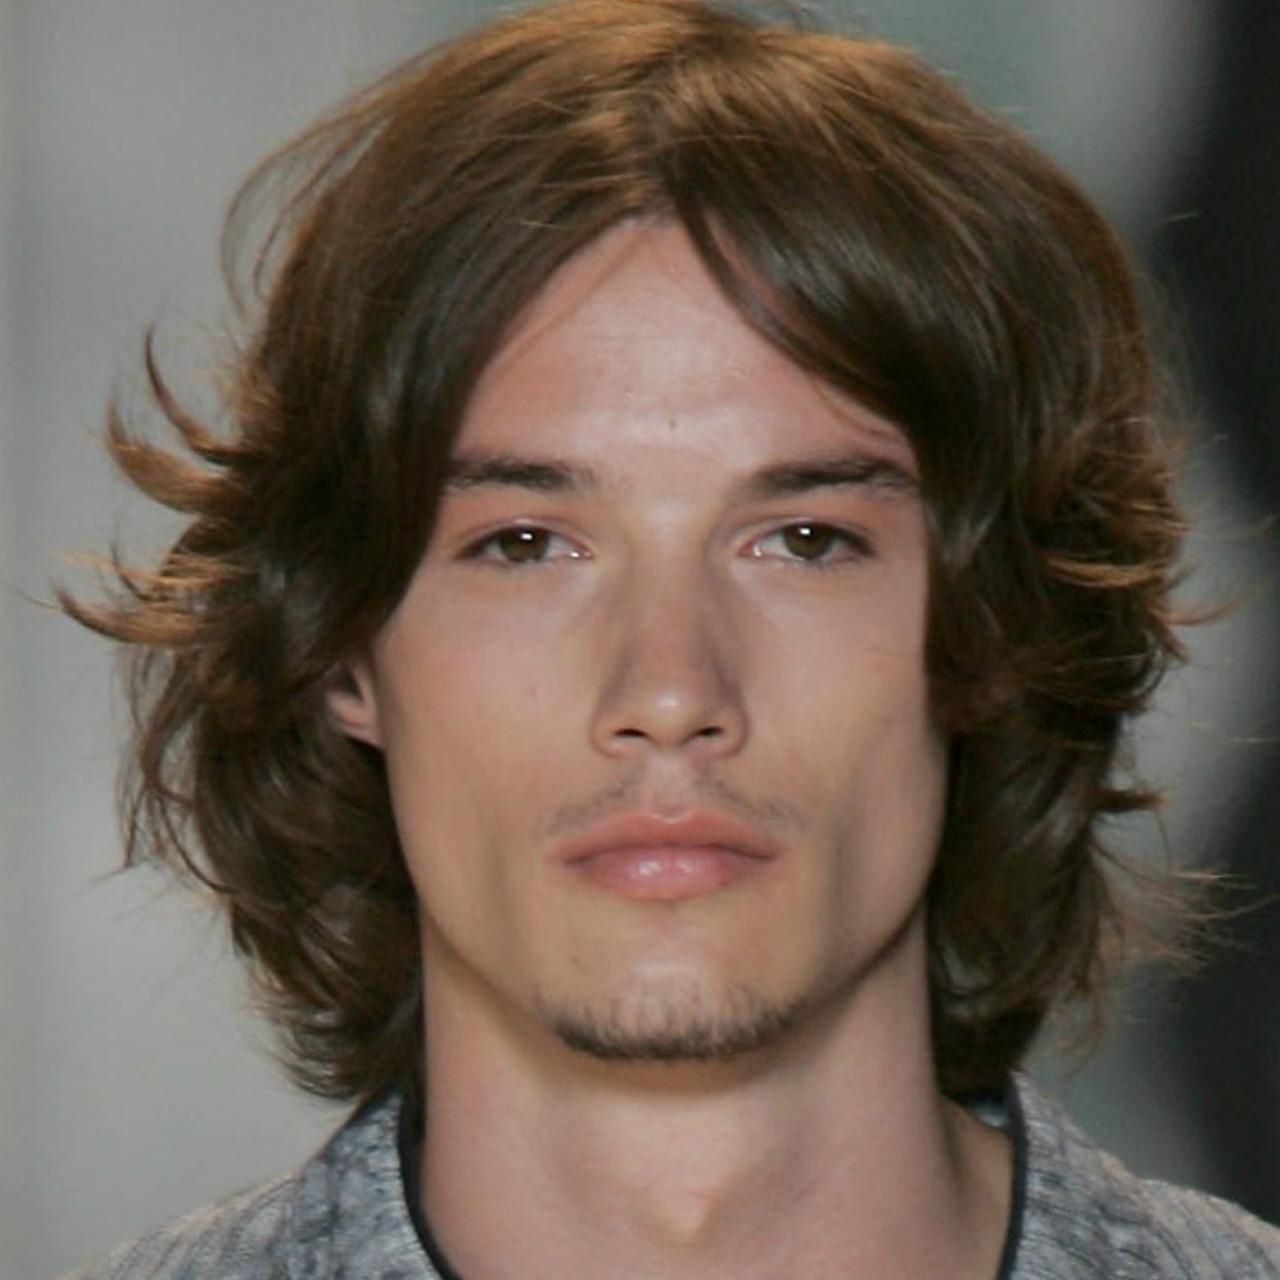 Current Long Black Haircuts With Light Flipped Up Ends With Long Hairstyles For Men Picture Gallery (View 15 of 20)